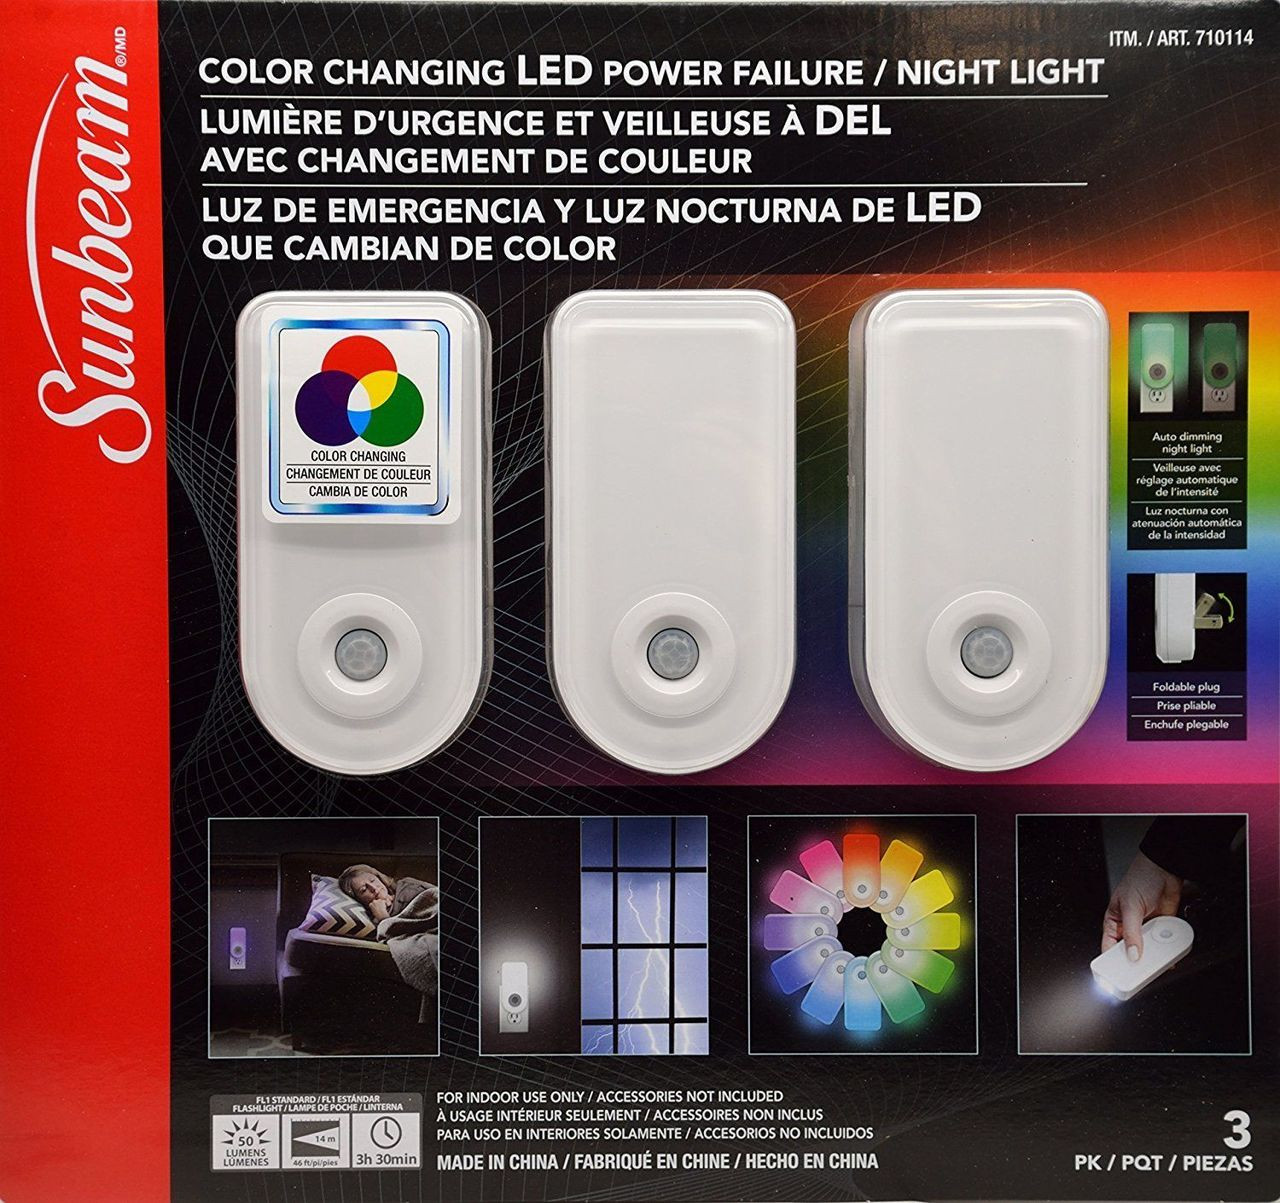 Lit Avec Lumiere Led sunbeam led night light power failure color changing 3 pack